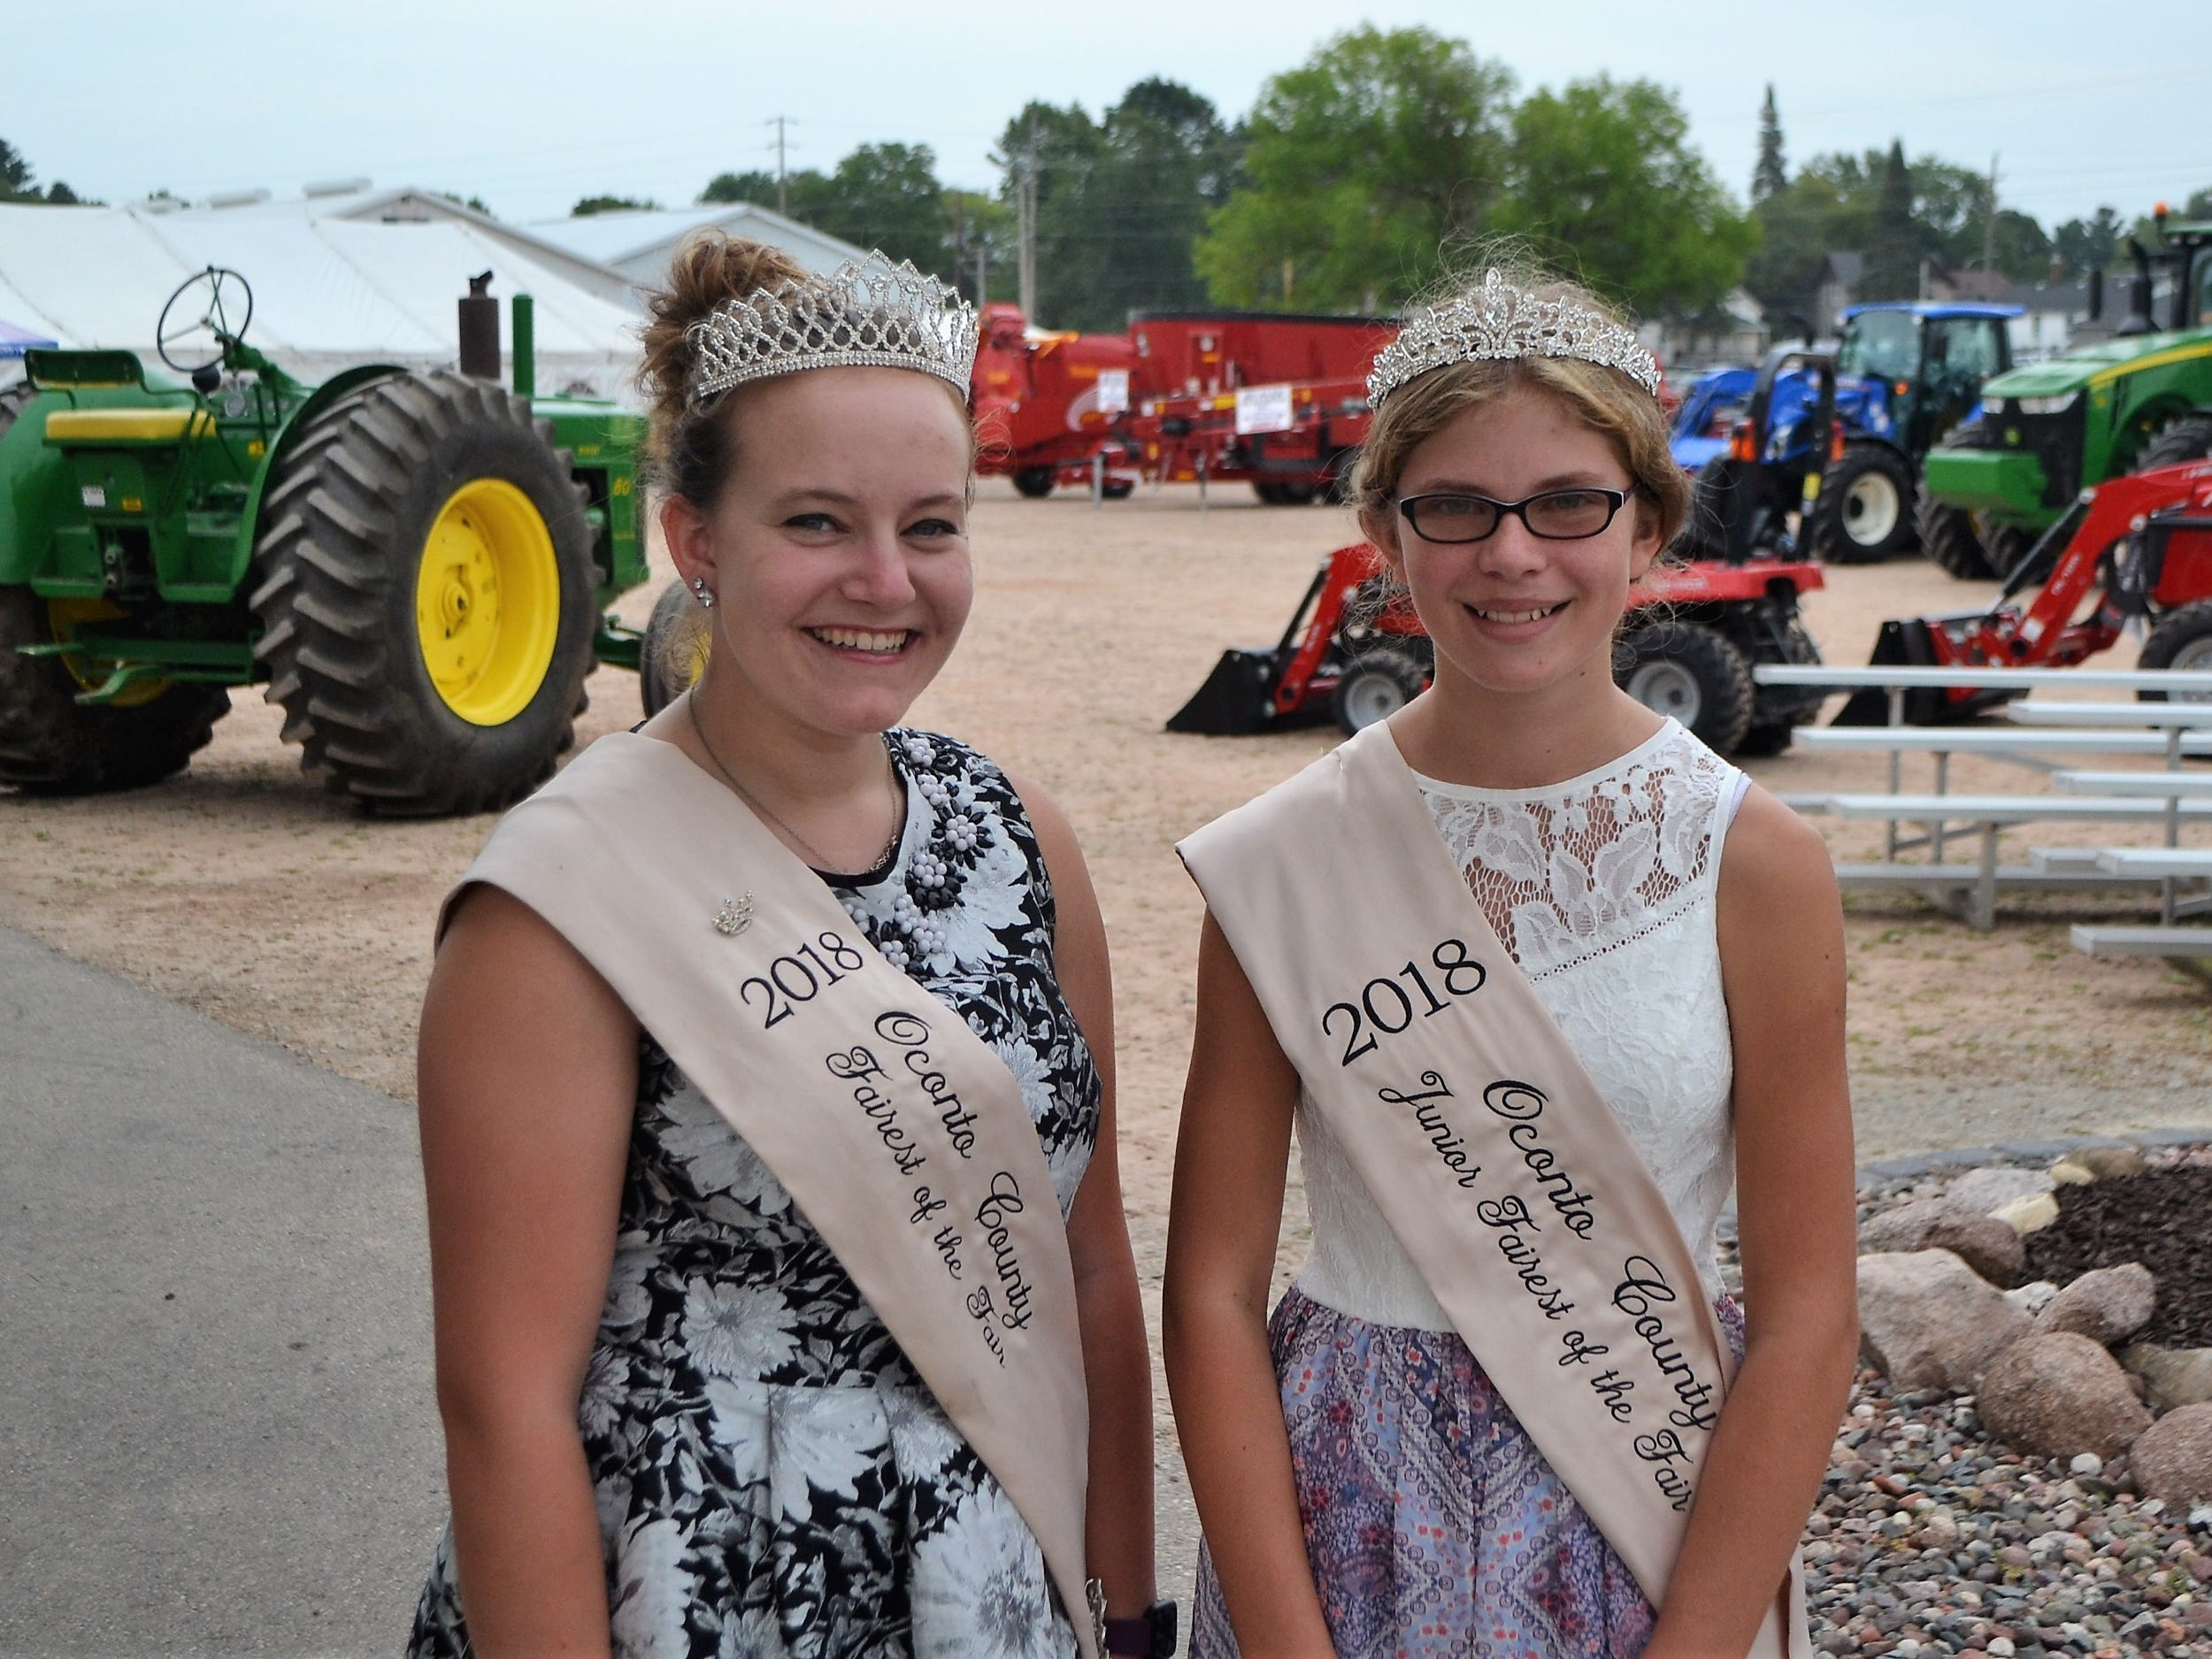 Danielle Paschke of Pulaski and Delaney  Debauche, the Fairest and Junior Fairest of the Fair this year, are  seen after the opening ceremony of the Oconto County Fair on Thursday, Aug. 16.